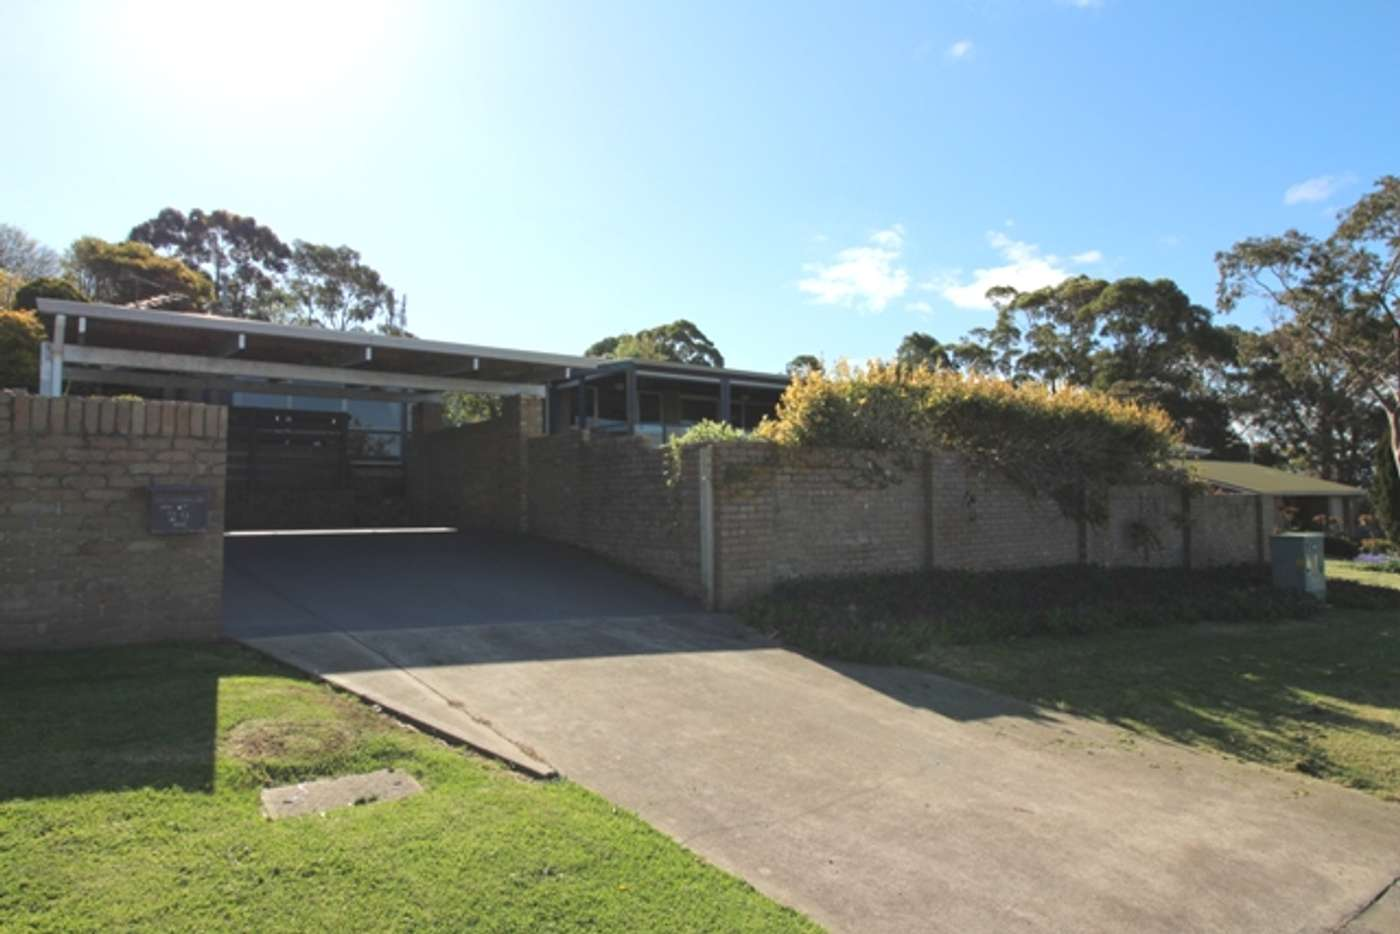 Main view of Homely house listing, 20 Blume Terrace, Mount Gambier SA 5290